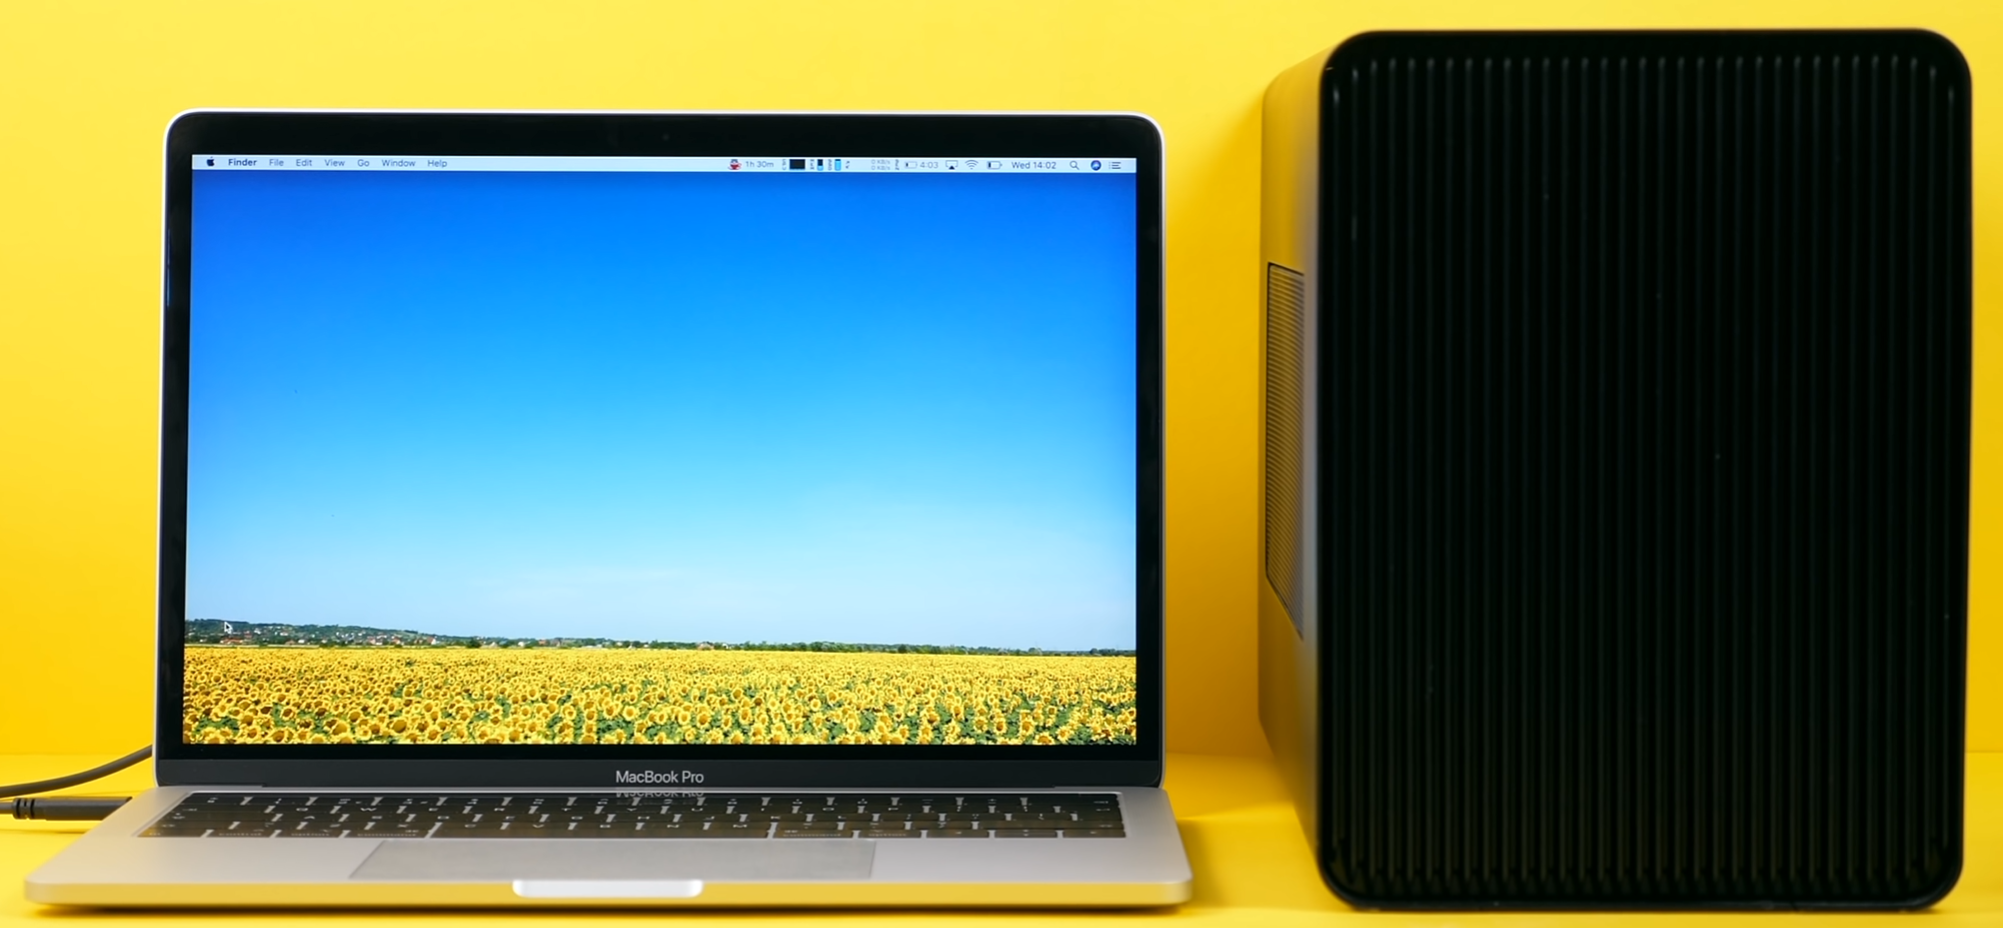 By adding an eGPU to your set up you will get a significant improvement in the performance of your MacBook